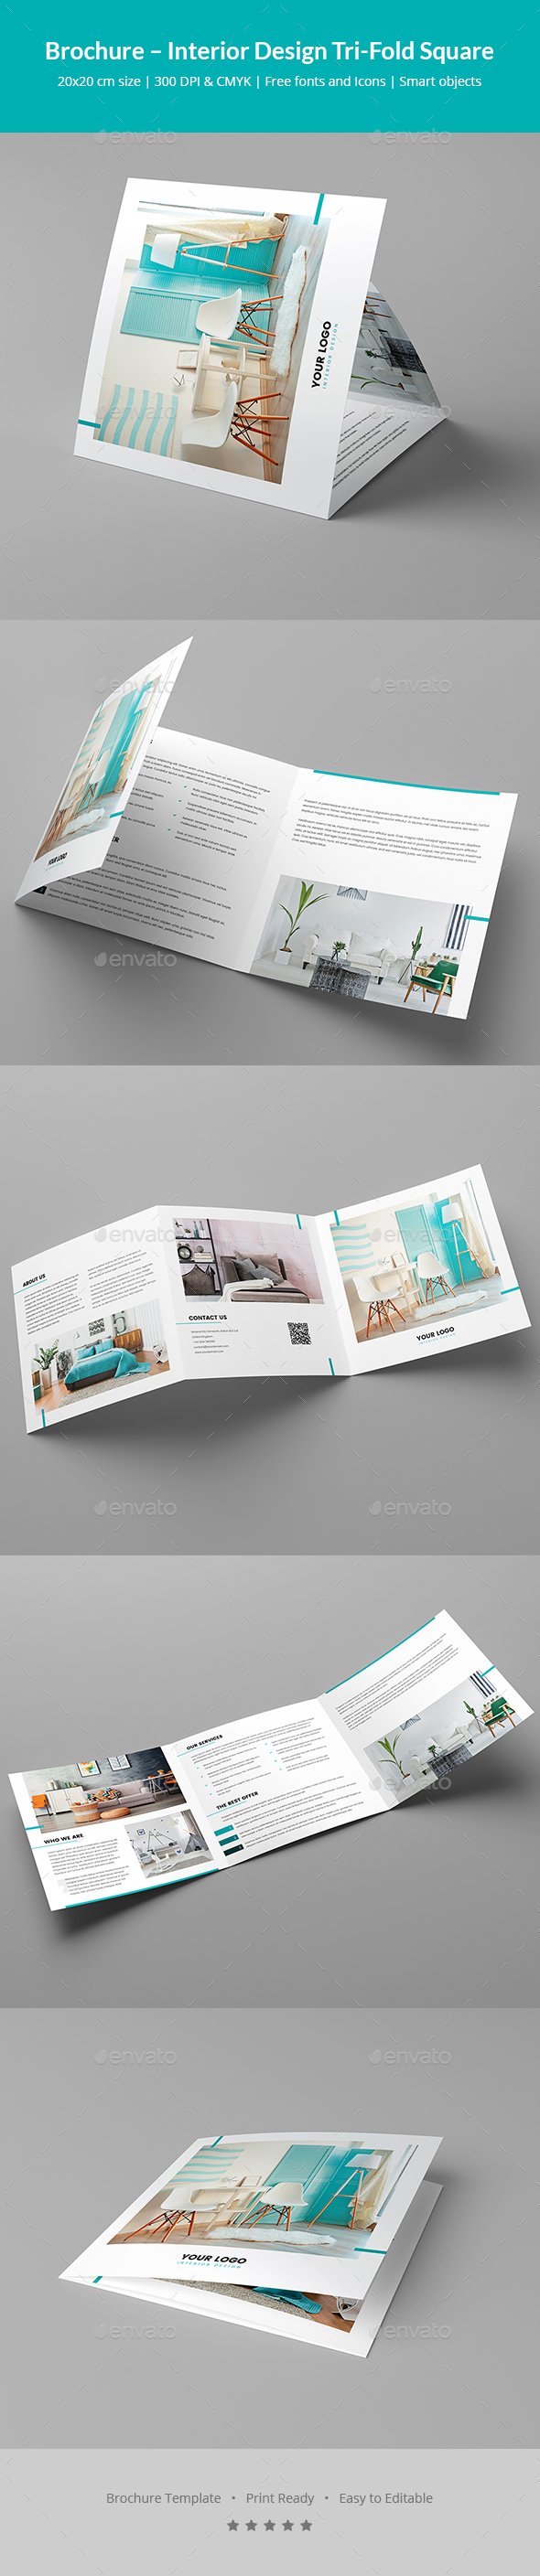 Brochure – Interior Design Tri-Fold Square - Corporate Brochures